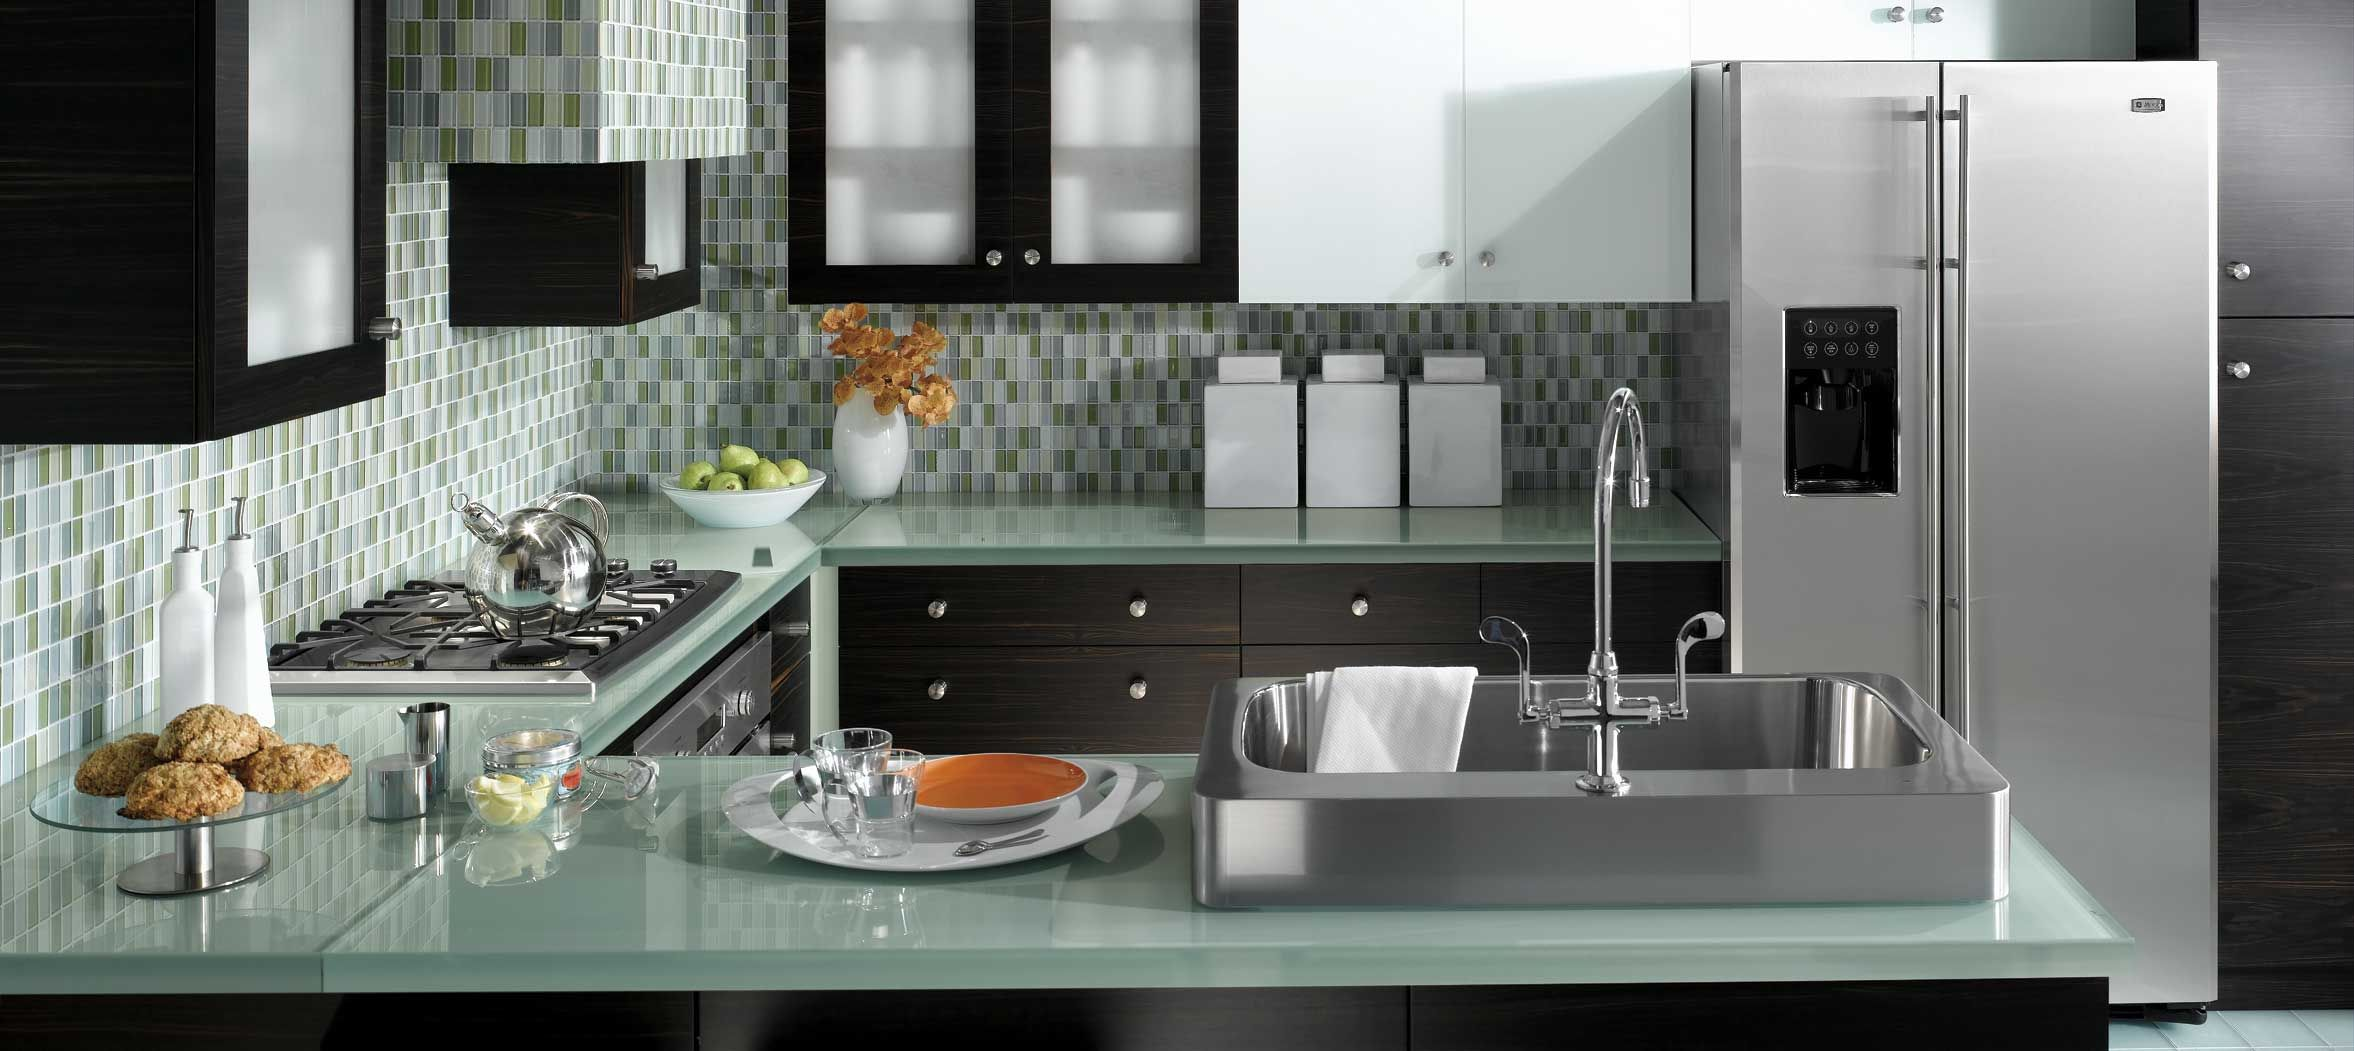 at first look this thoroughly modern glass ge monogram kitchen